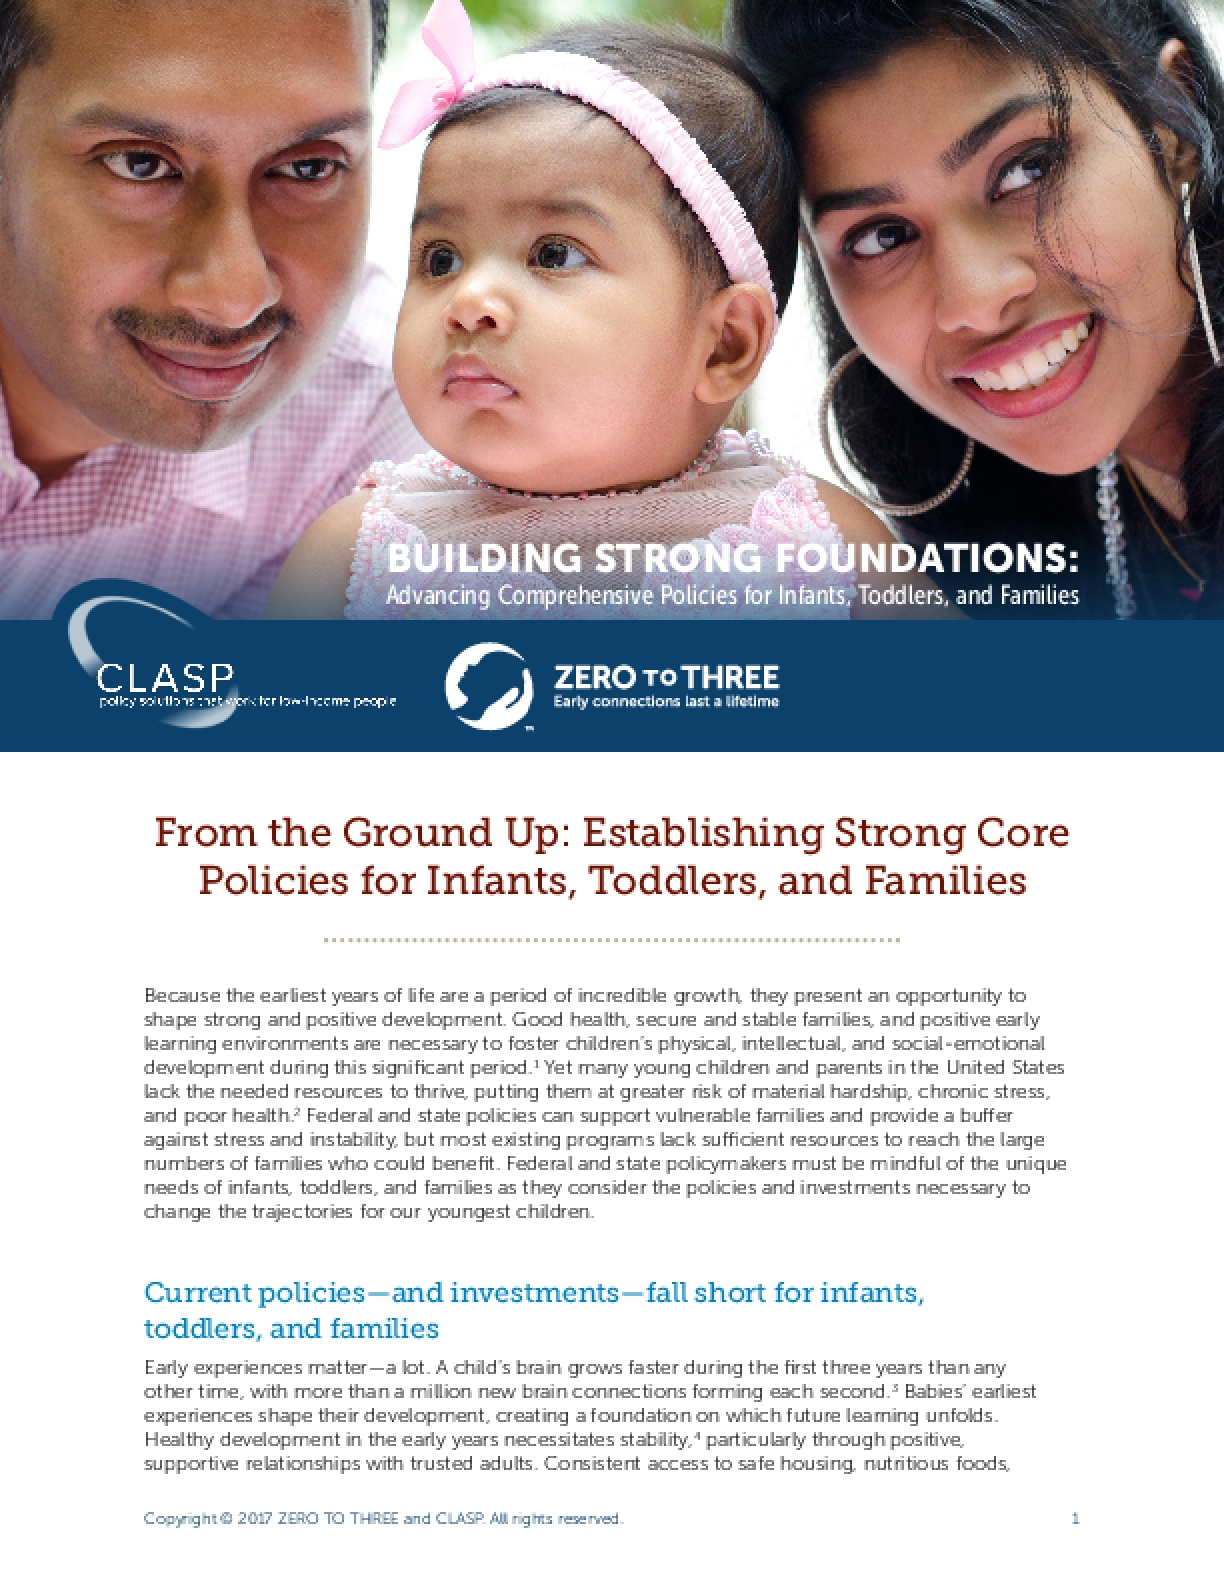 From the Ground Up: Establishing Strong Core Policies for Infants, Toddlers, and Families